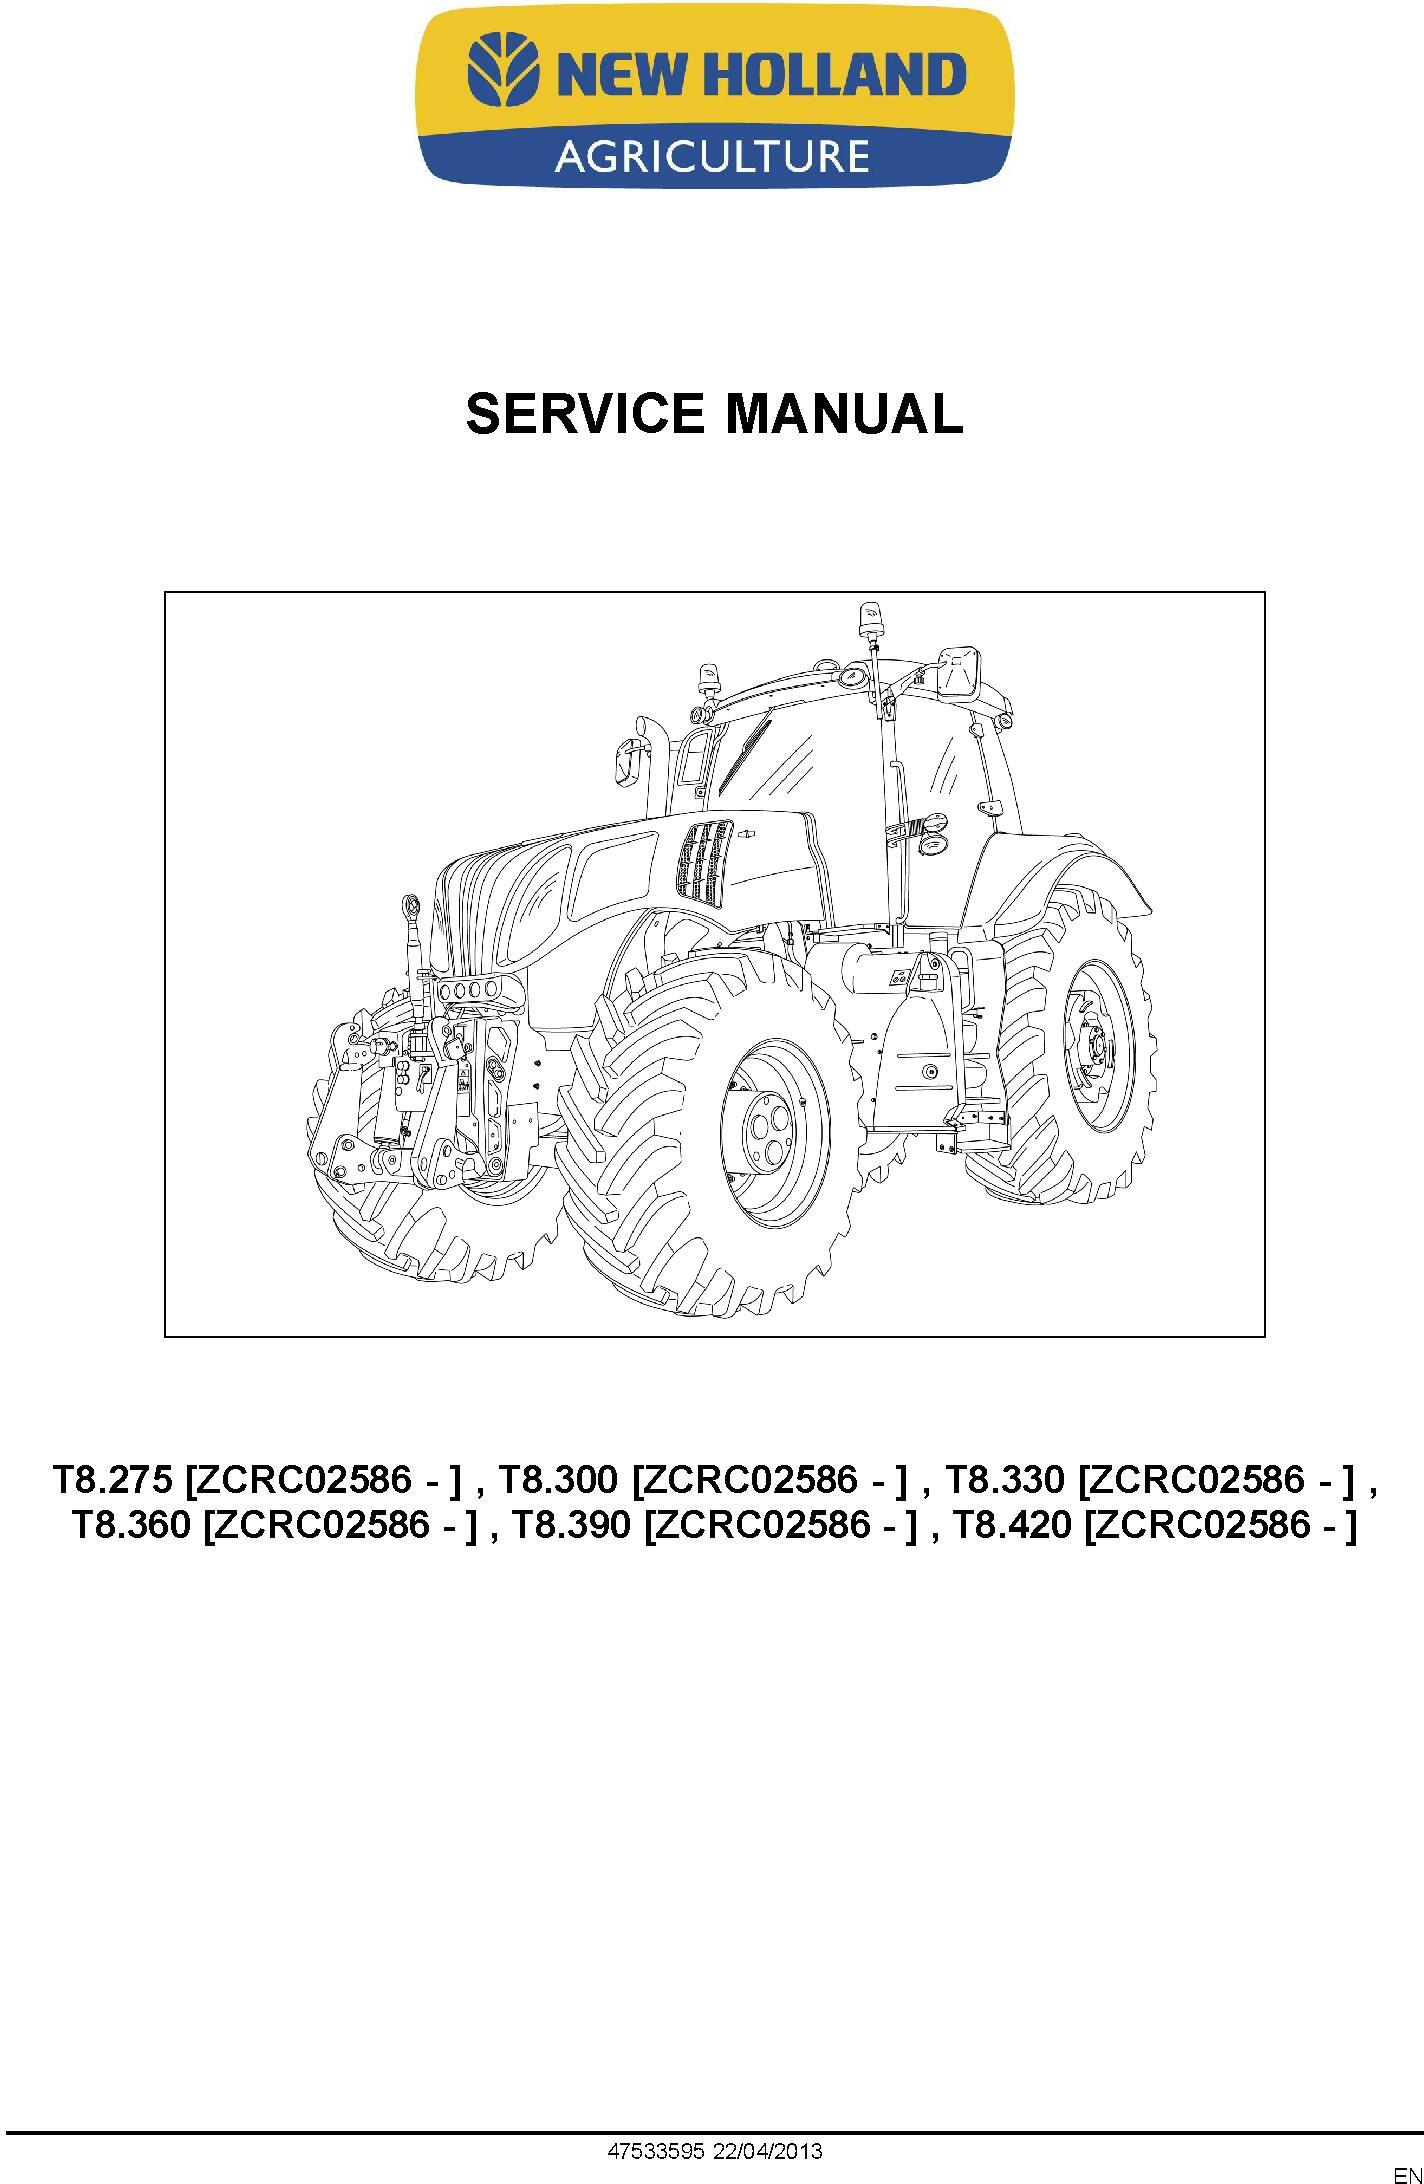 New Holland T8.275, T8.300, T8.330, T8.360, T8.390, T8.420 Tractor w.CVT Transmission Service Manual - 1